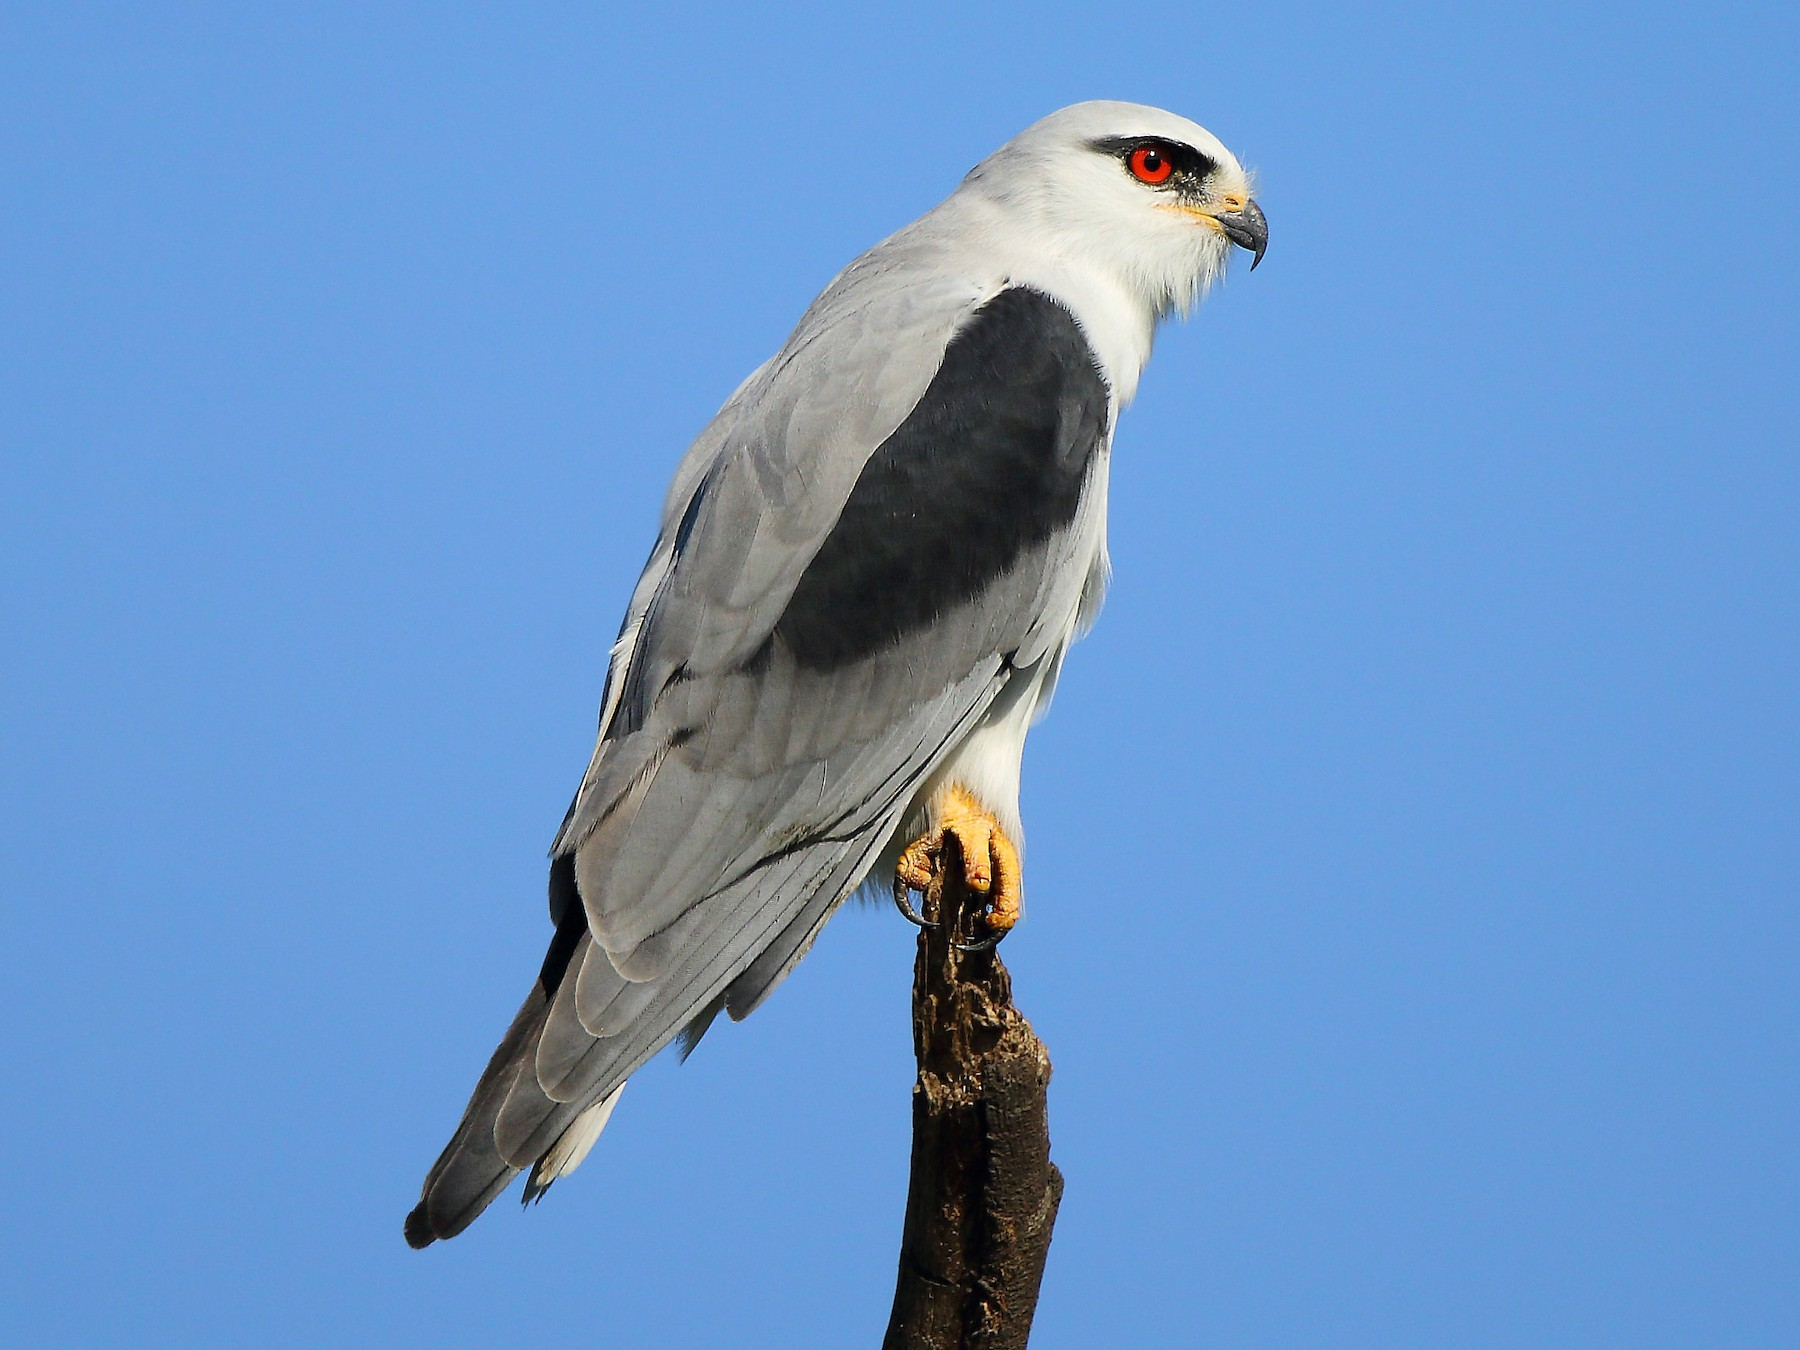 Black-winged Kite - Albin Jacob